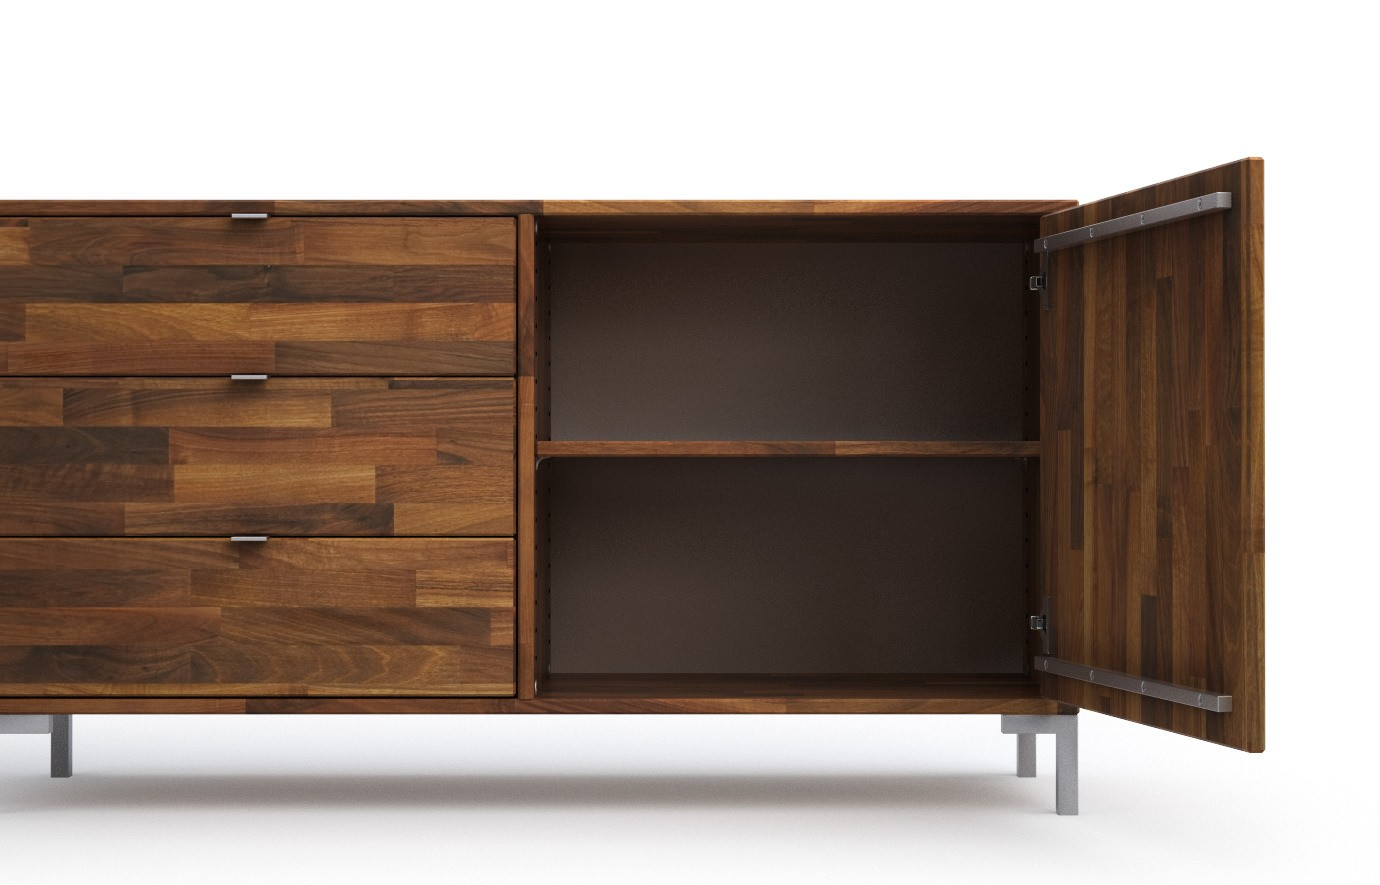 Baltimore Walnuss Kommode Baltimore Walnuss Sideboard Wohnwand Baltimore Walnuss